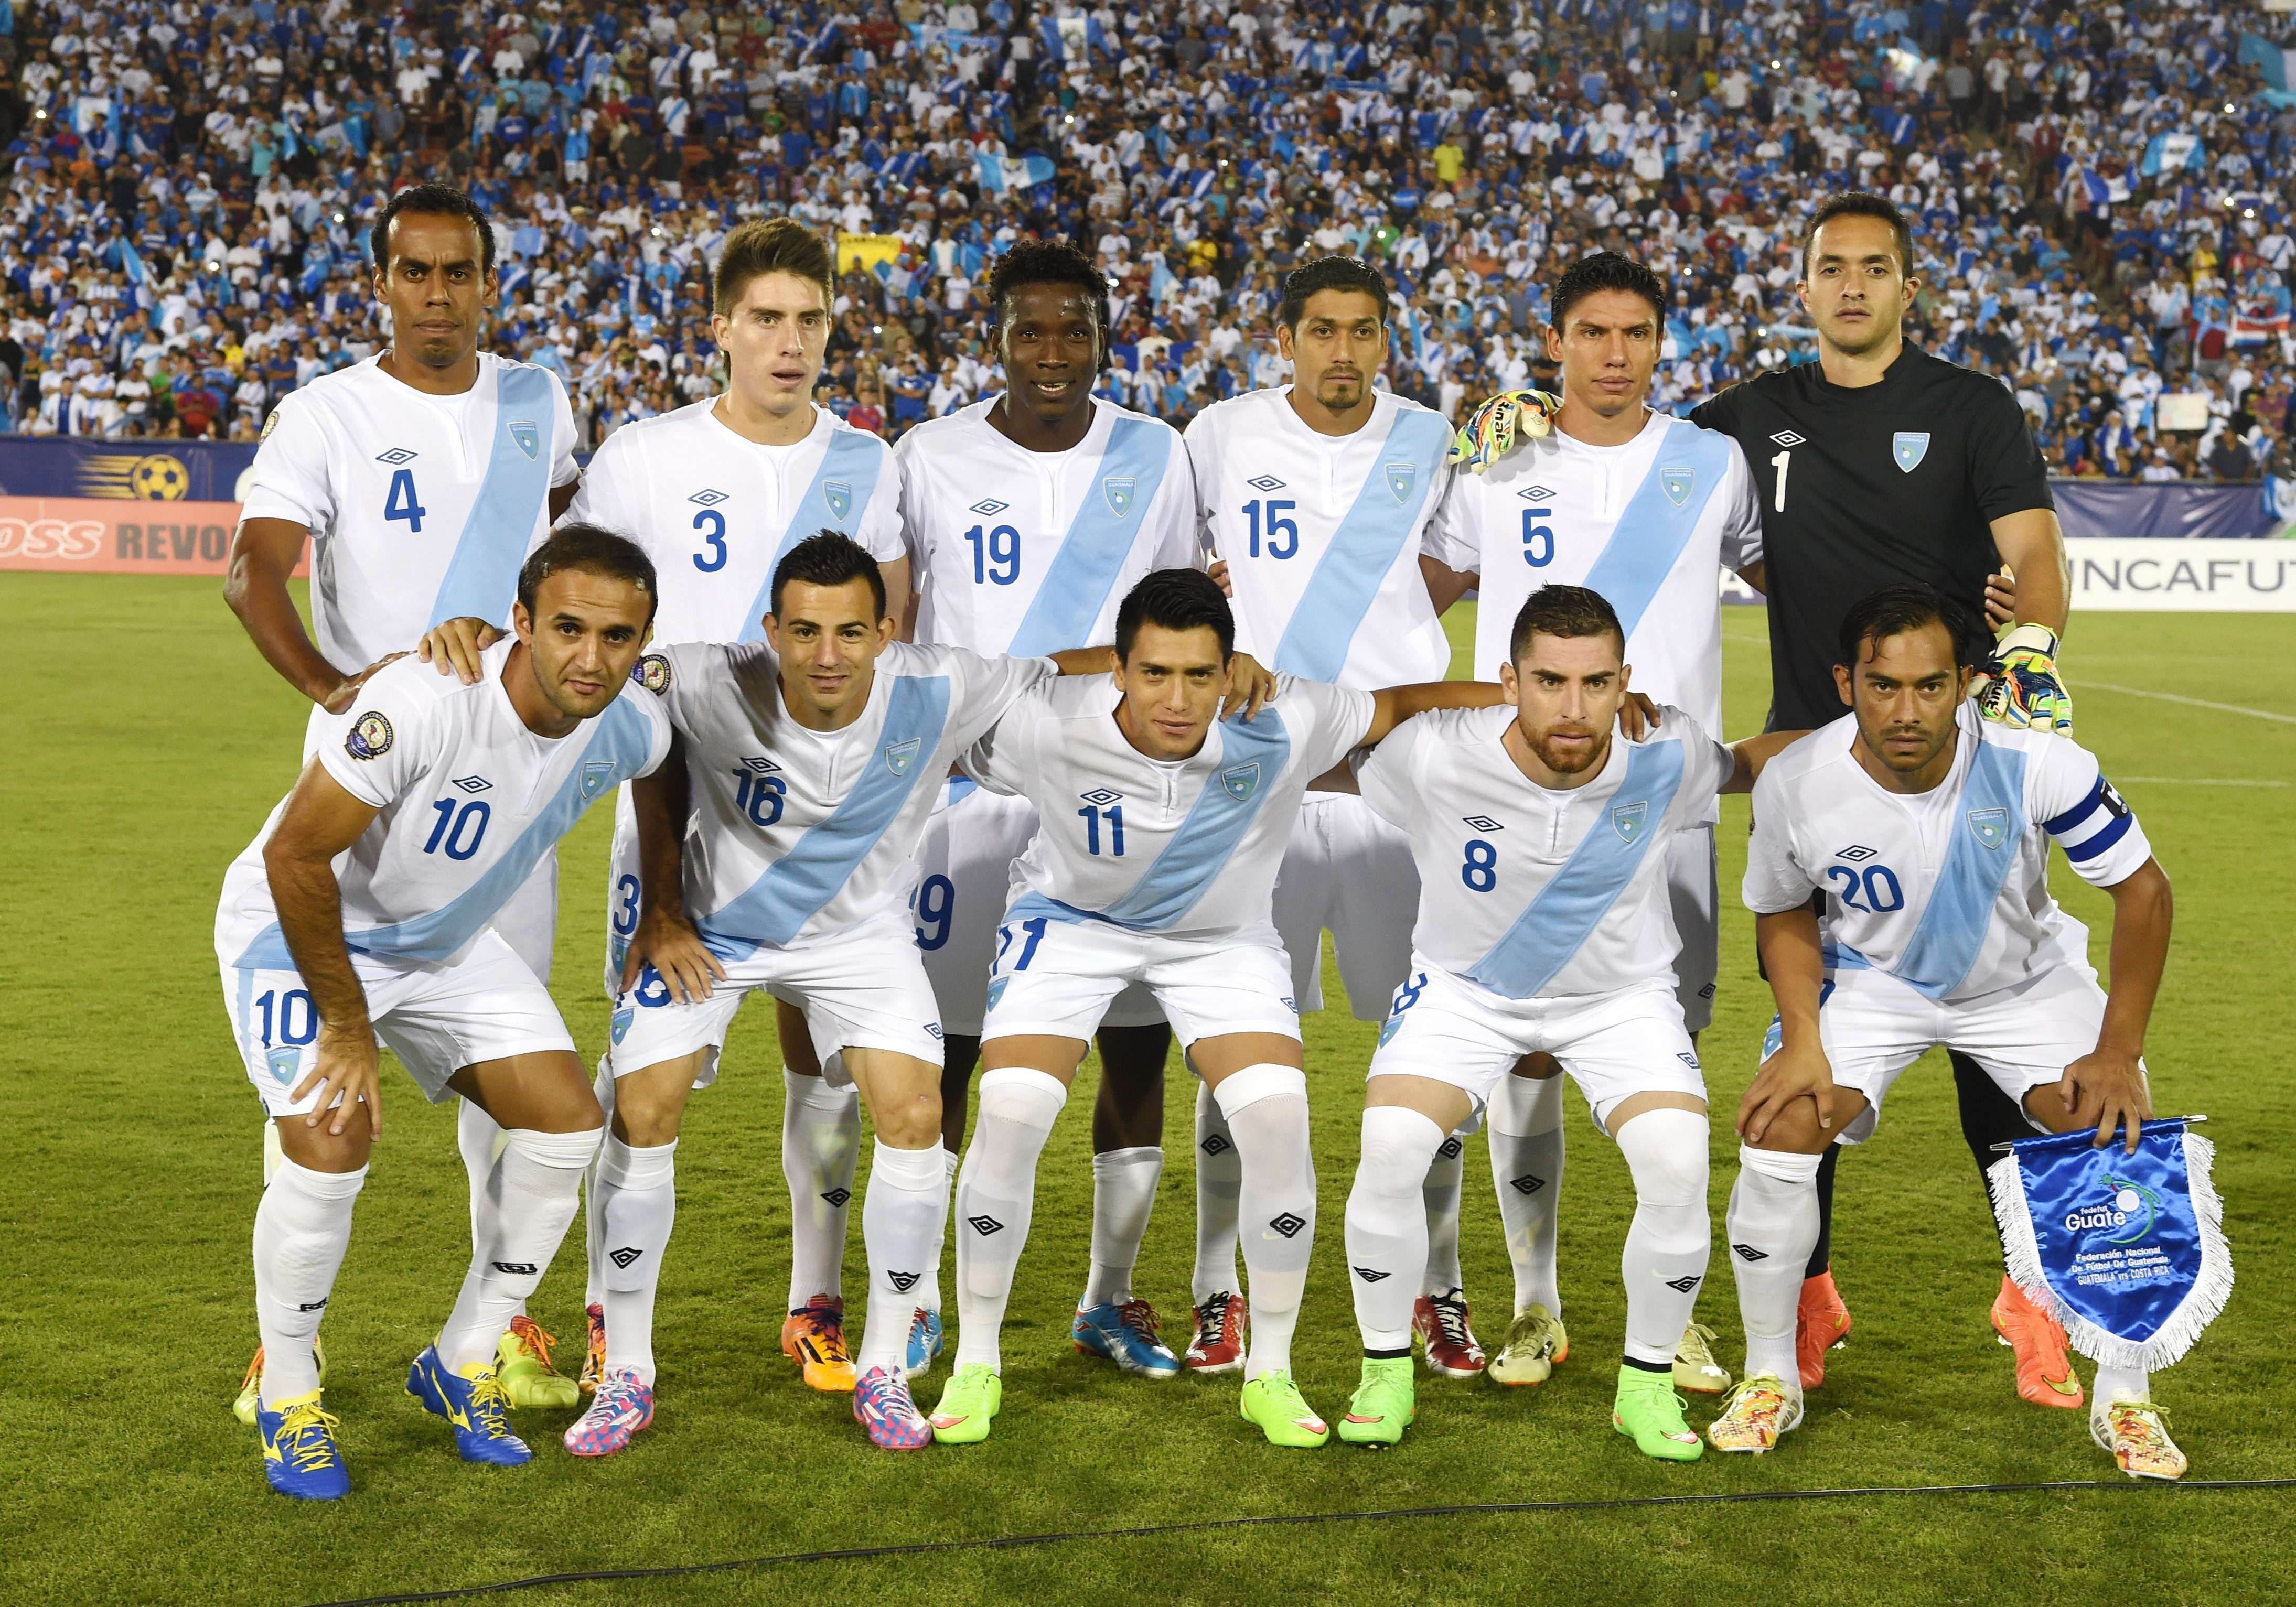 Guatemala's soccer team poses before their Central American Cup Tigo 2014 USA First Place finals Match against Costa Rica at the LA Memorial Coliseum in Los Angeles on September 13, 2014.   AFP PHOTO / Robyn Beck